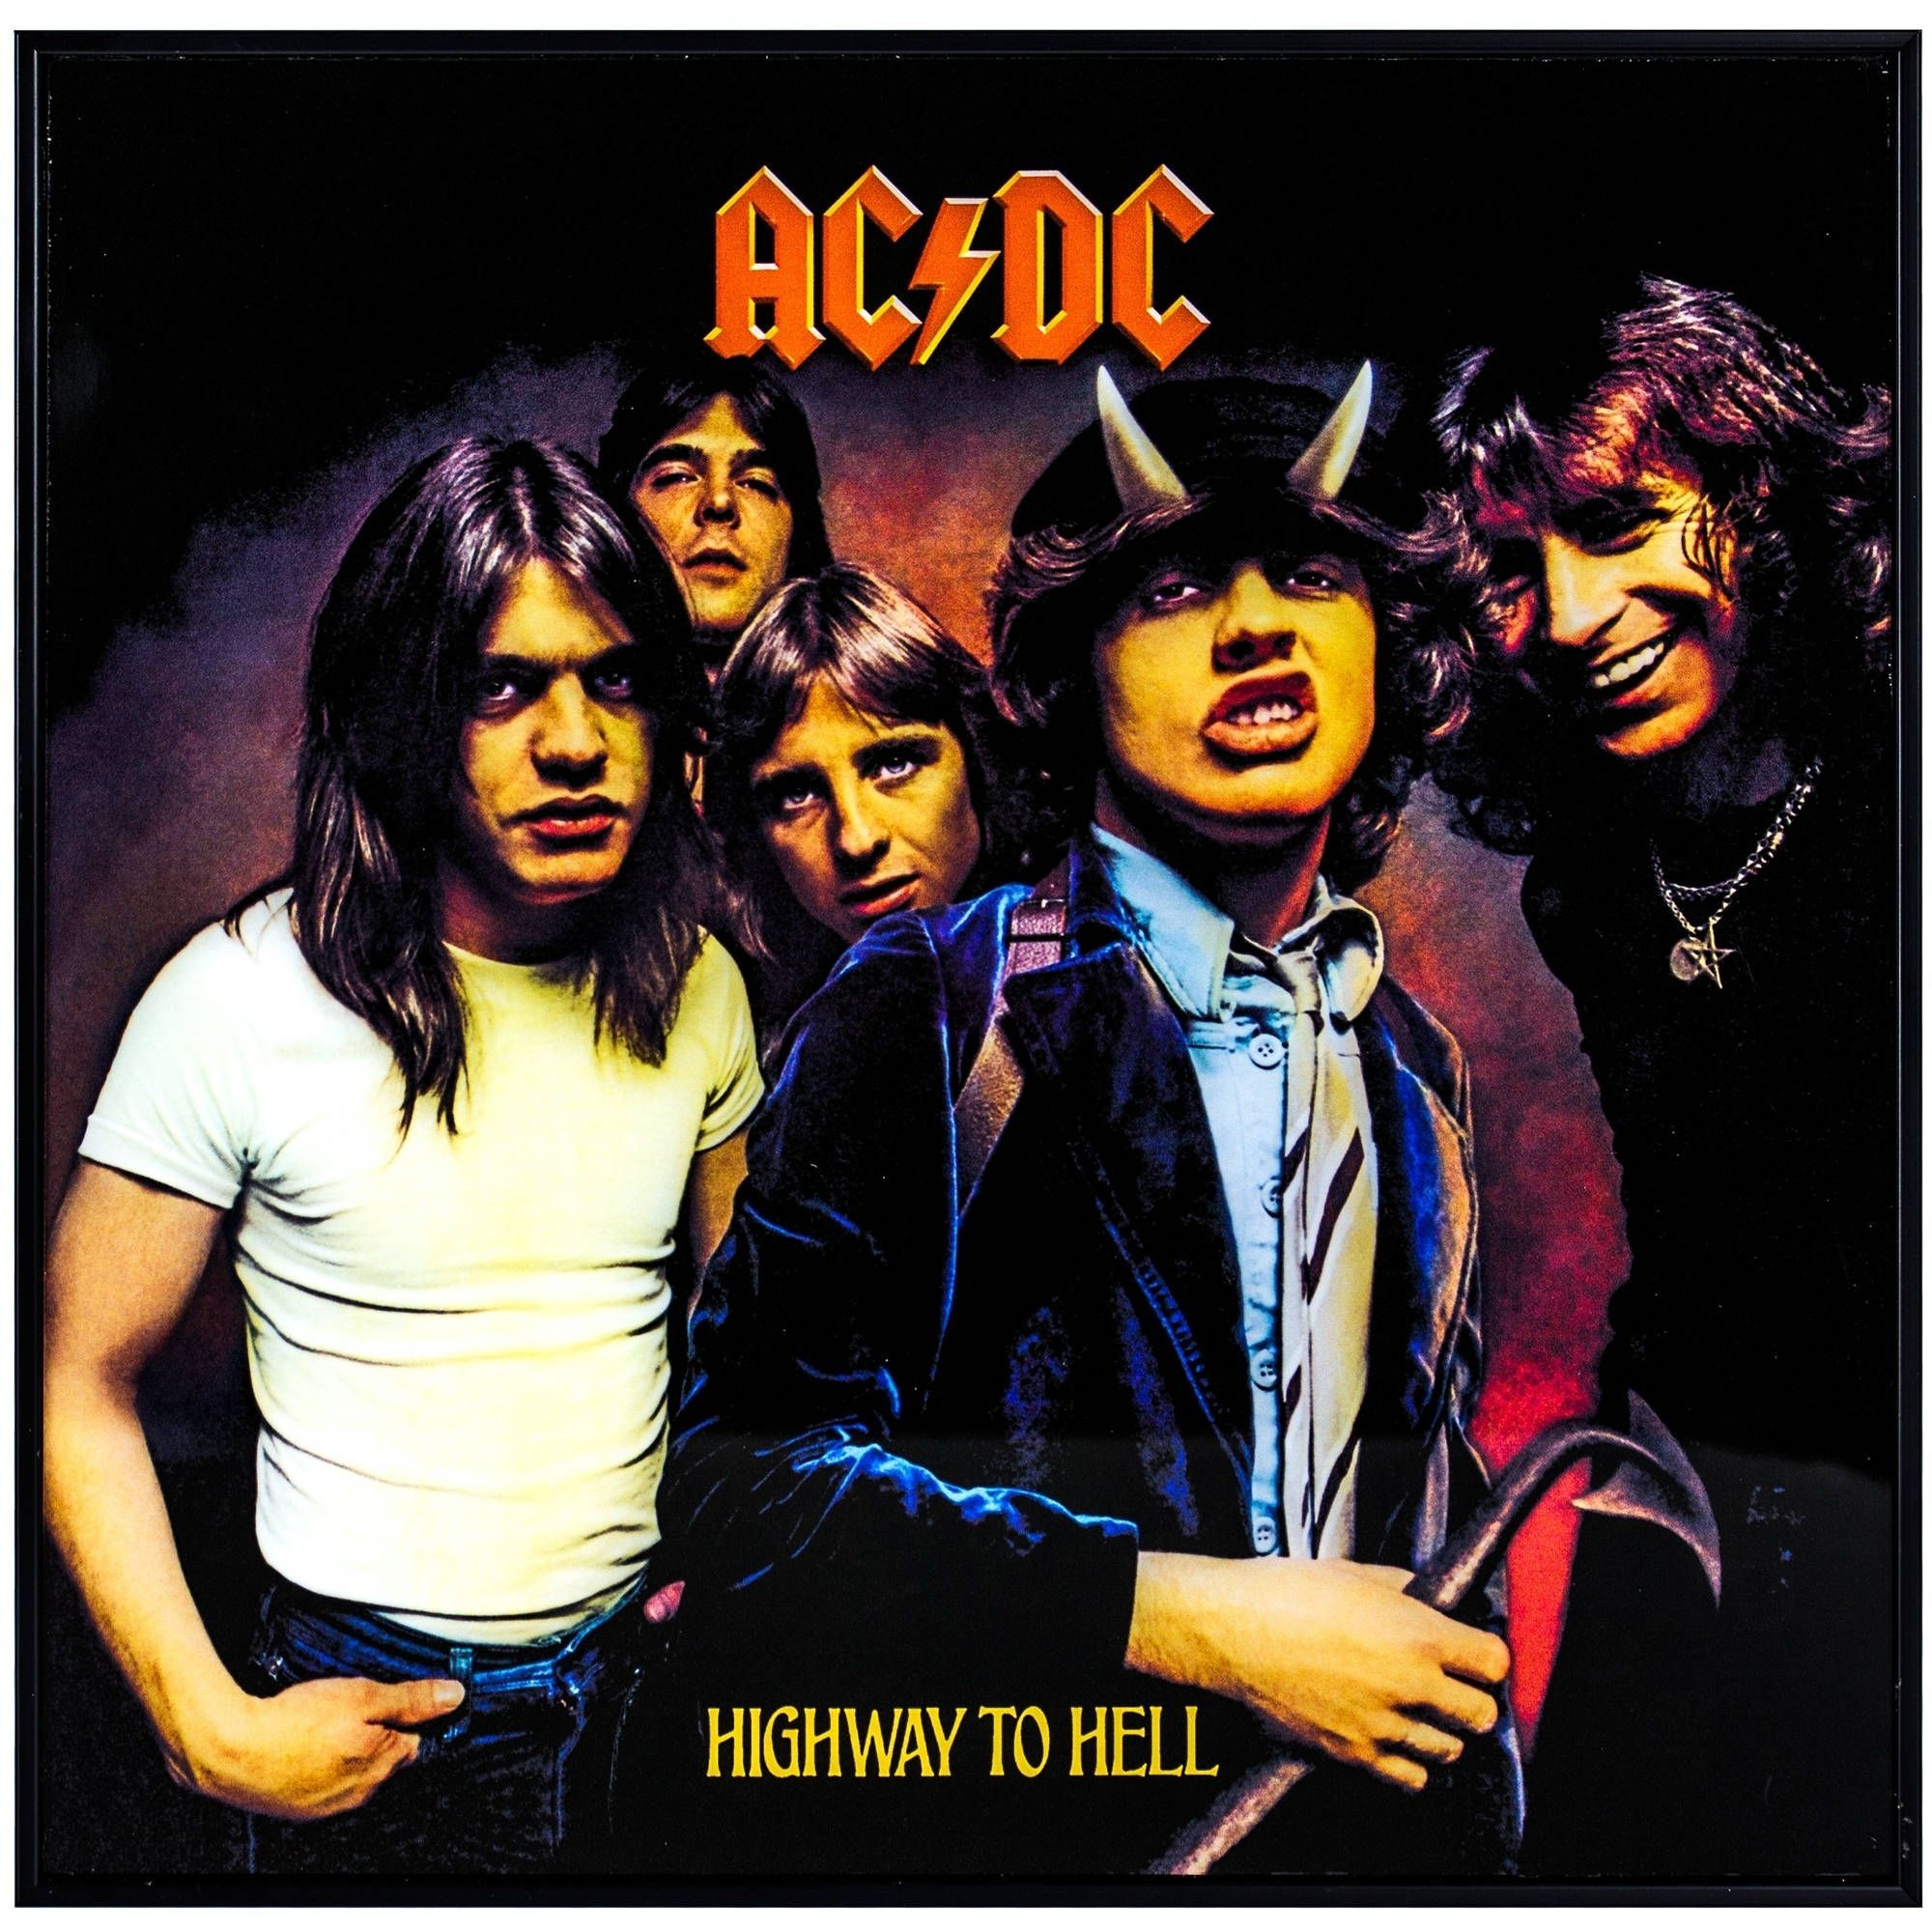 Acdc highway to hell framed album cover wall art products acdc highway to hell framed album cover wall art malvernweather Choice Image